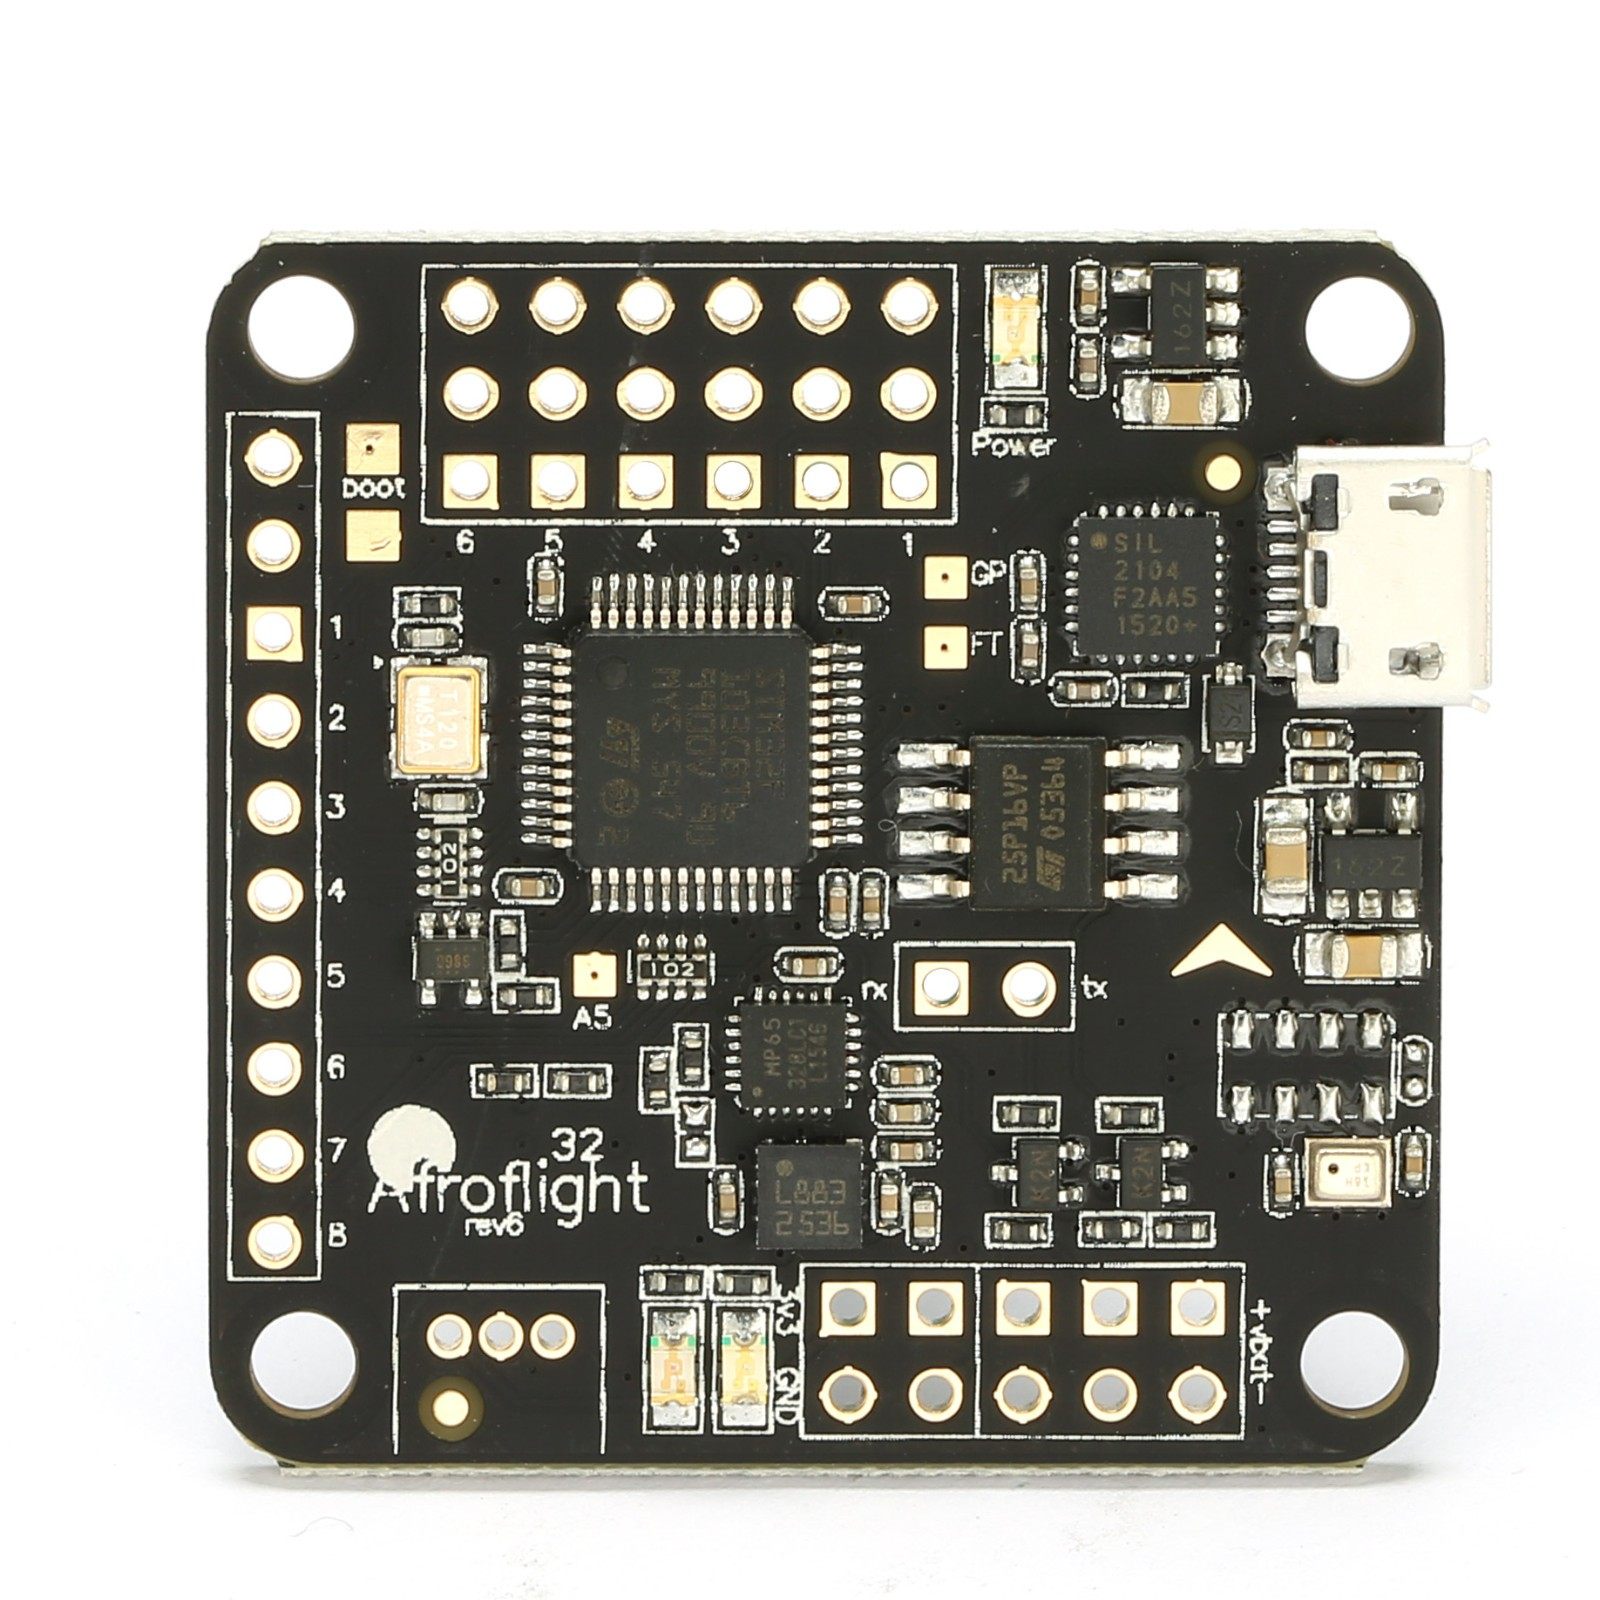 Naze 32 Rev.6 6 DOF Flight Controller